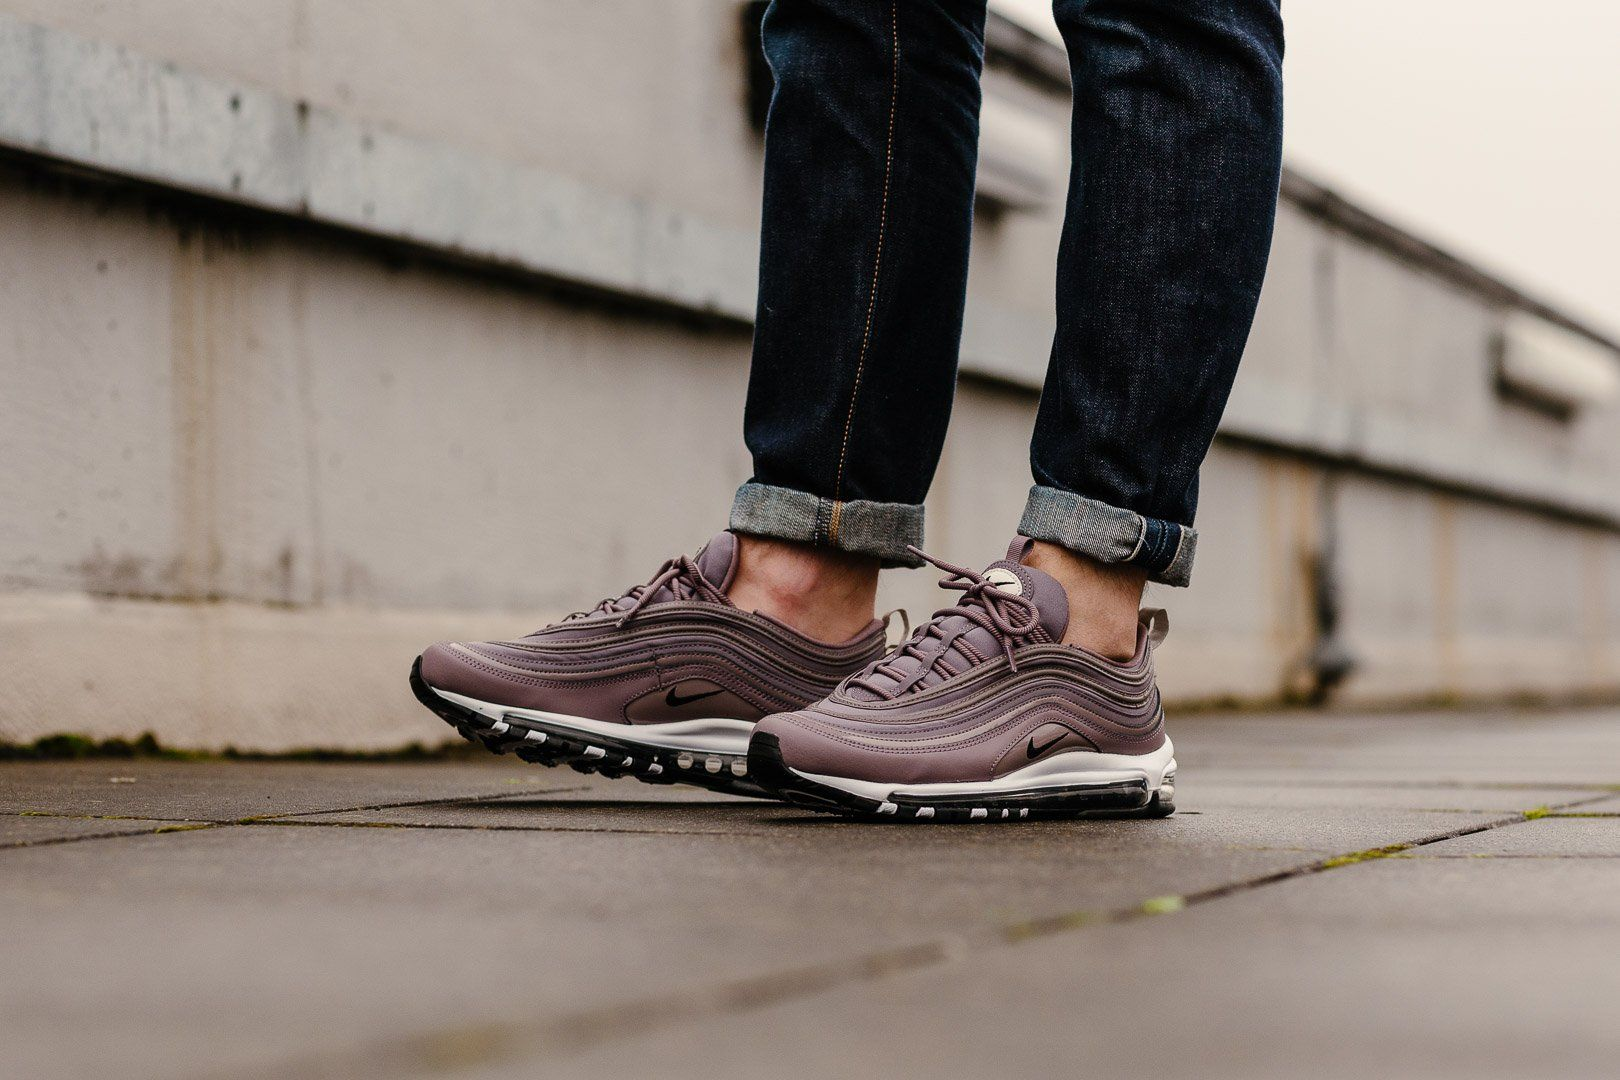 Product Name: Nike Air Max 97 Premium WMNS 917646-200 Specifications: The 97  has received a premium layout, with a grained leather wrapping around the  lower ...